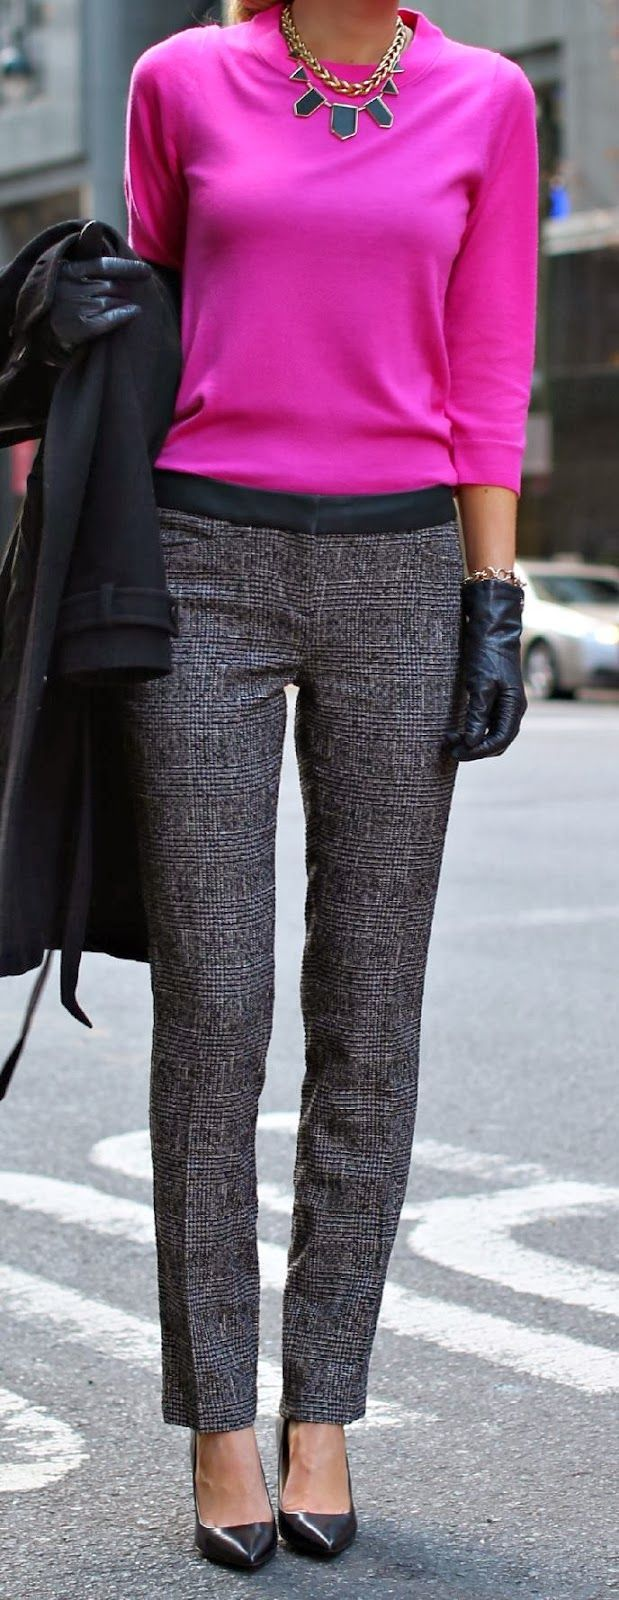 Casual pants in spring